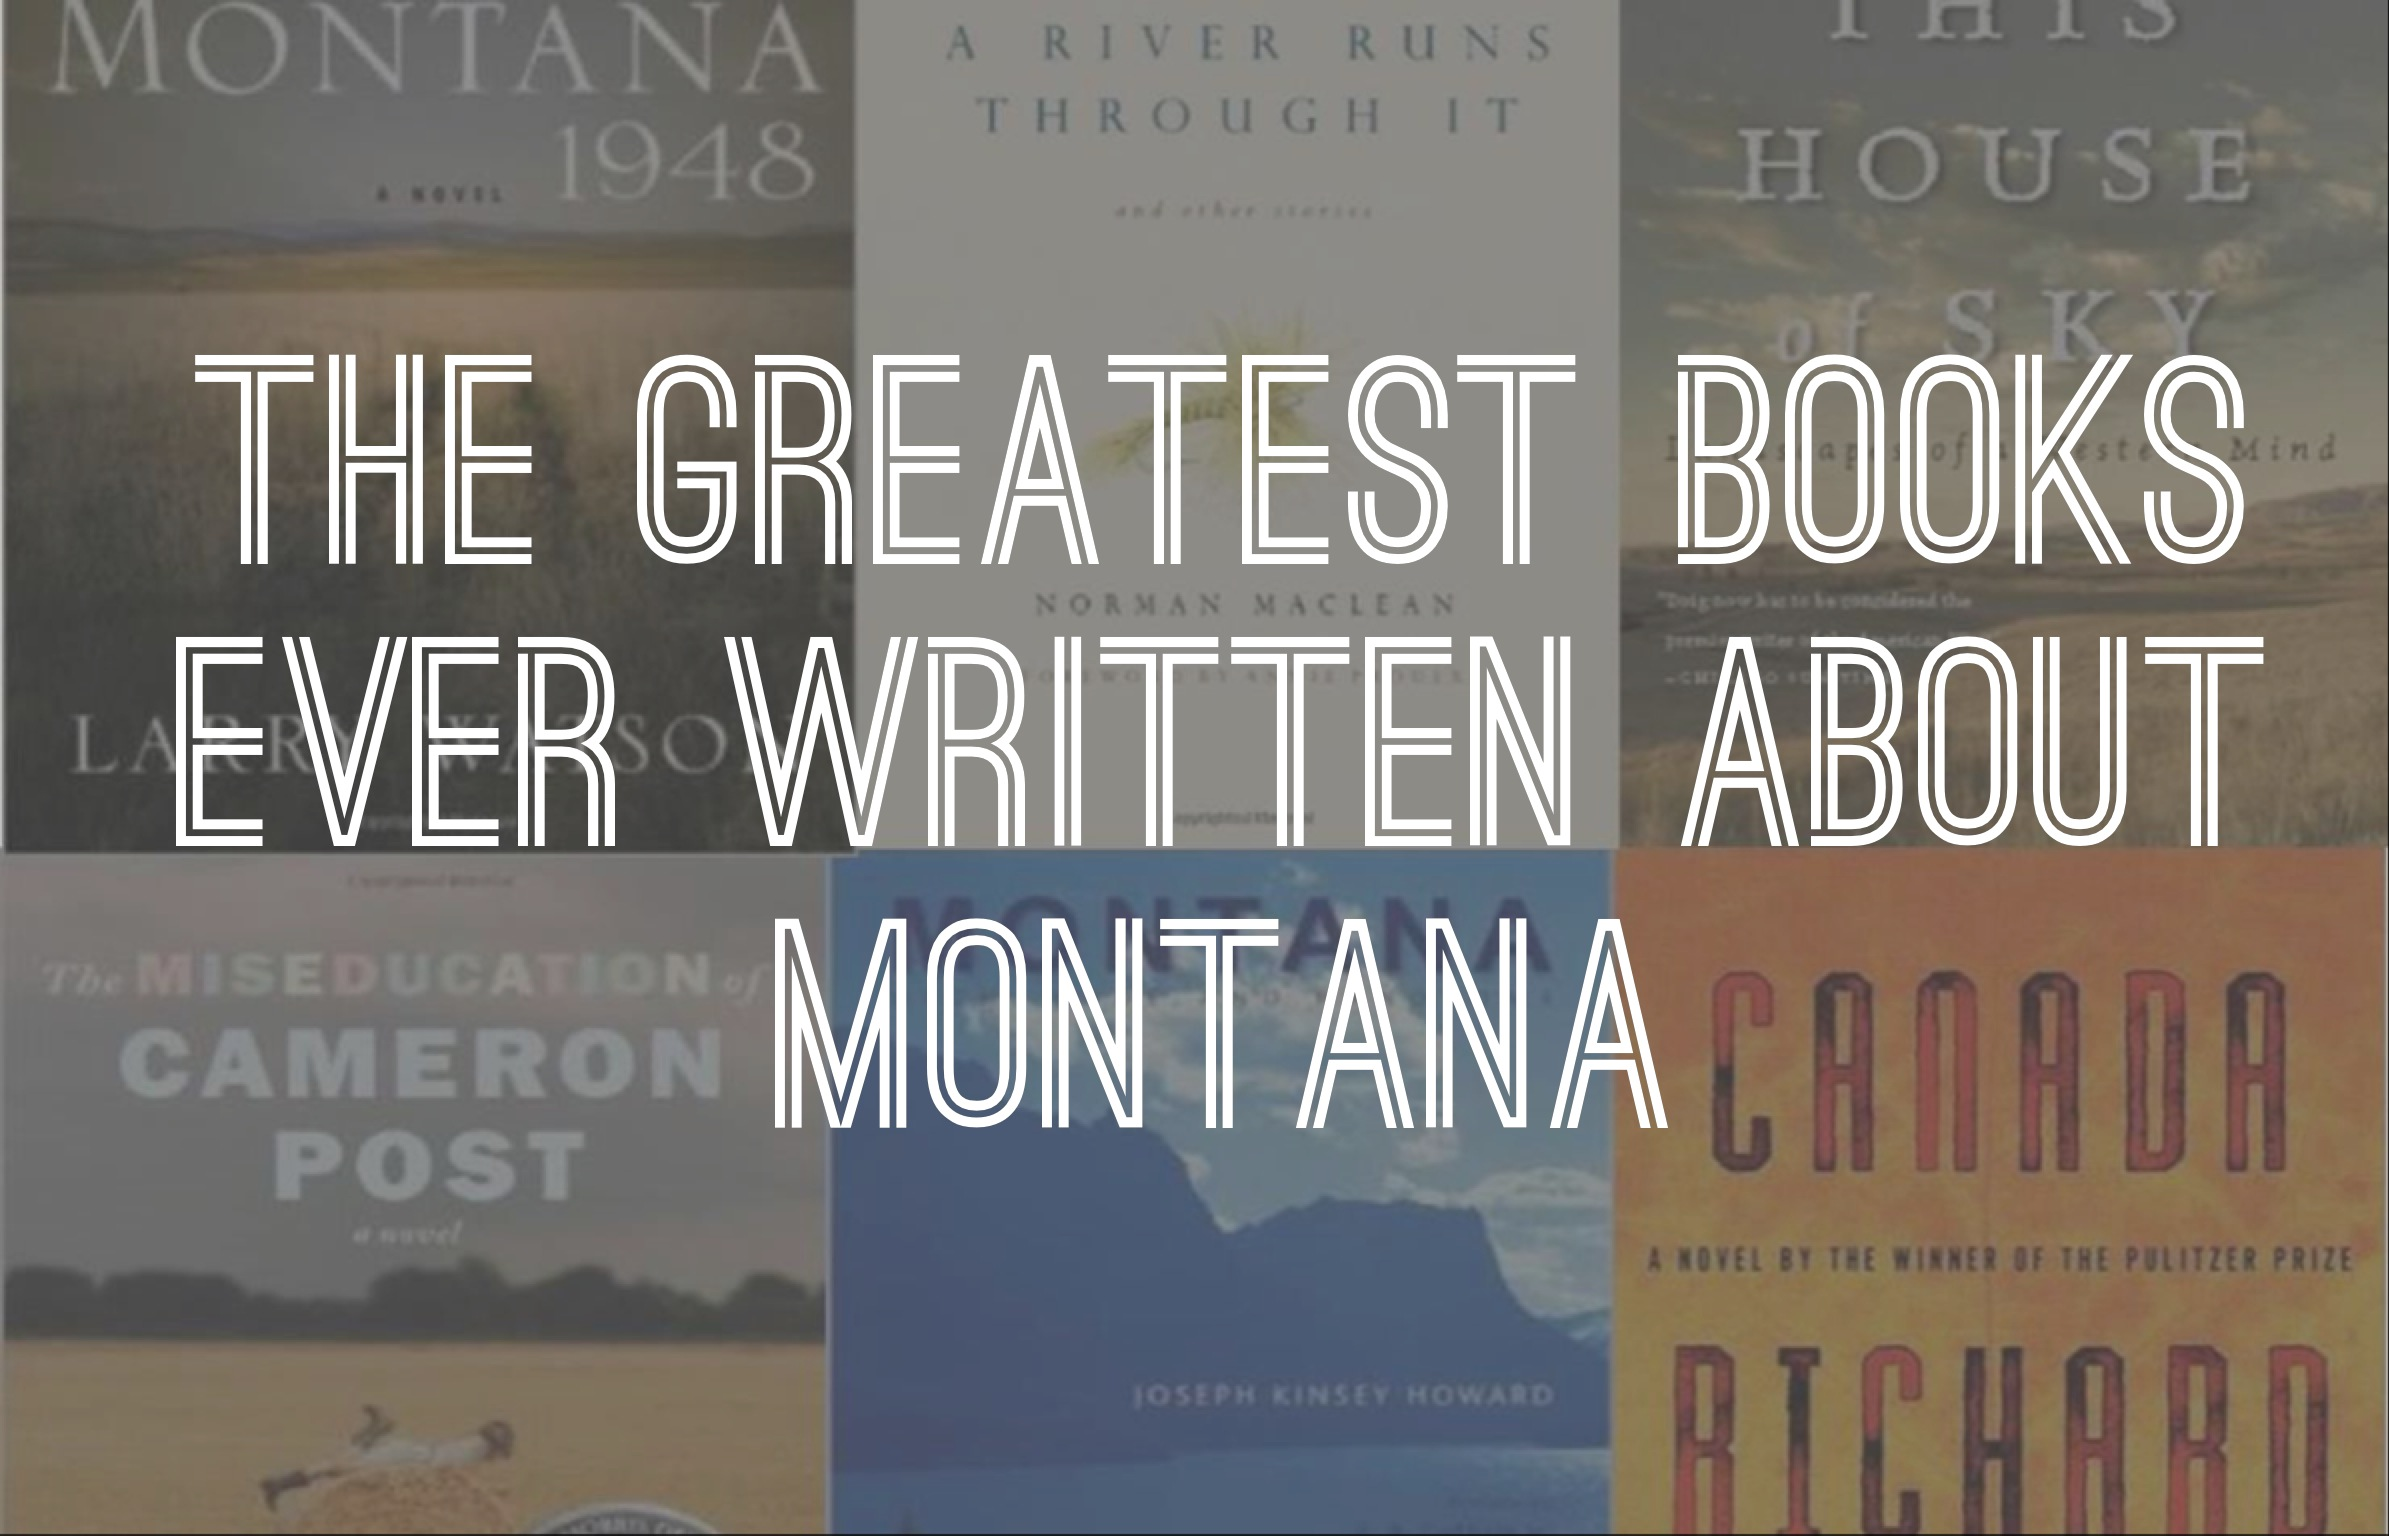 Montana prairie county mildred - Montana Mint The Greatest Website North Of Wyoming The Greatest Books Ever Written About Montana Montana Mint The Greatest Website North Of Wyoming